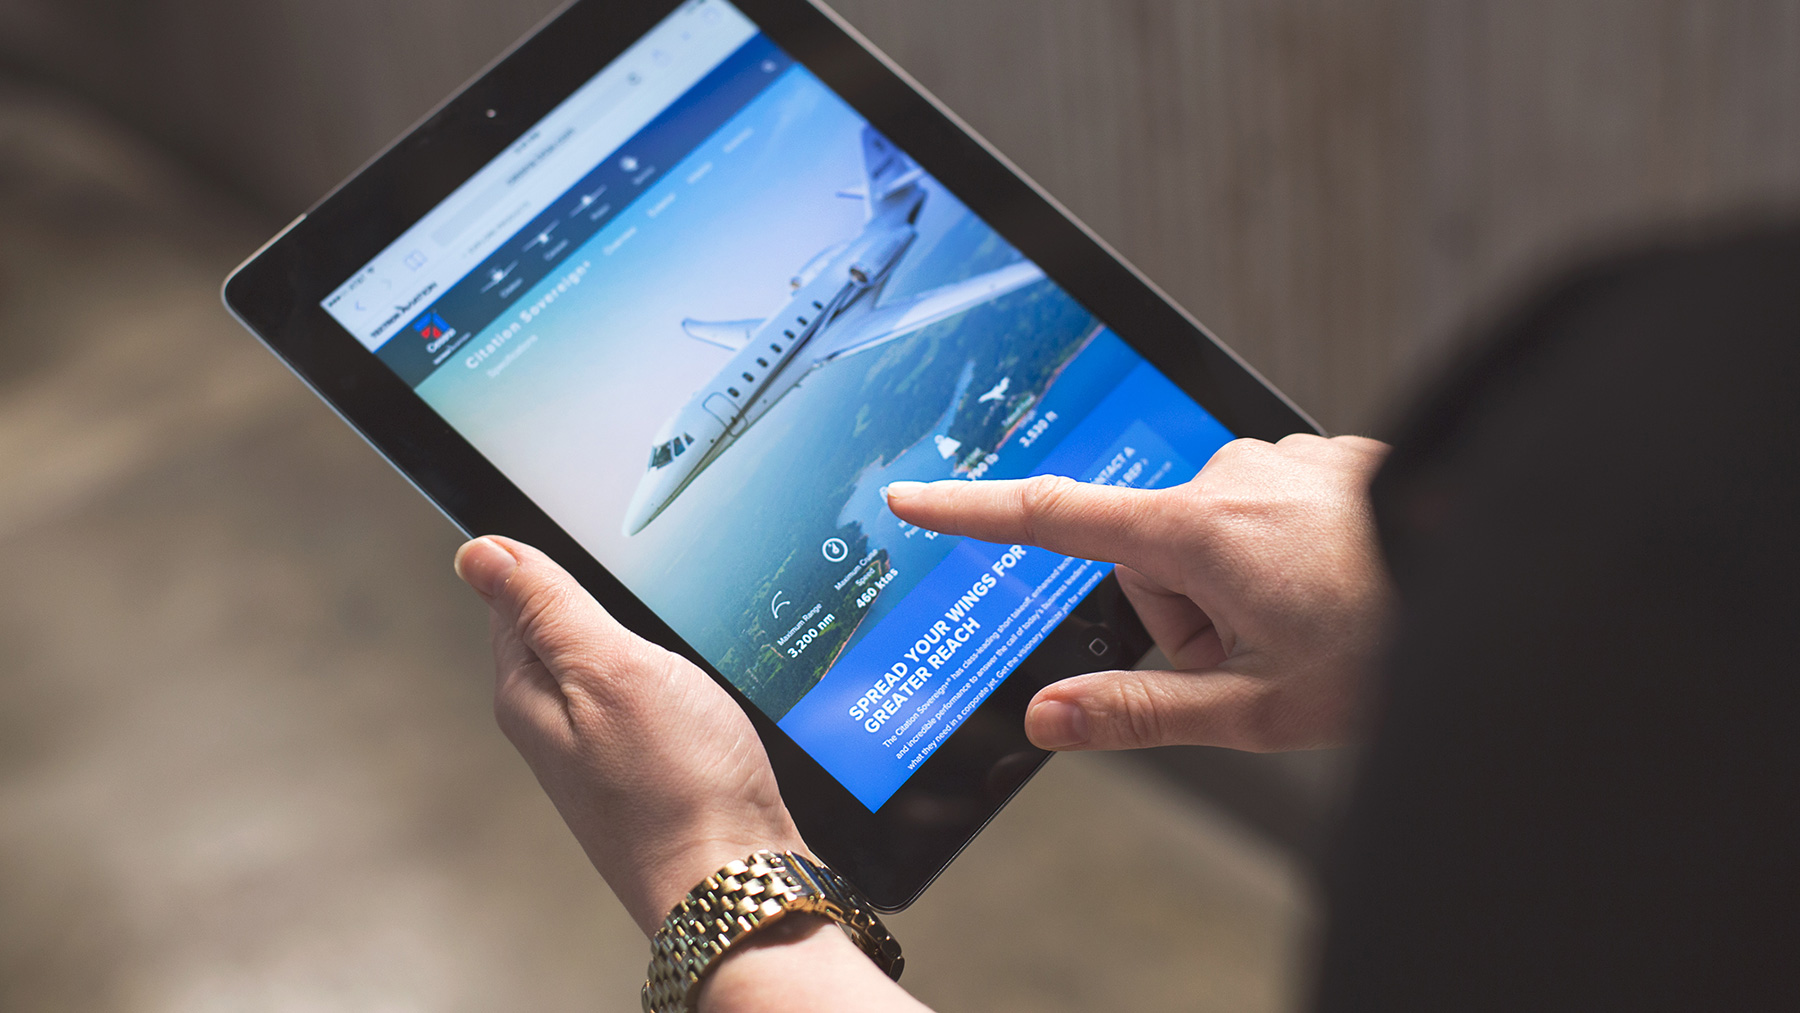 Aviation website on tablet